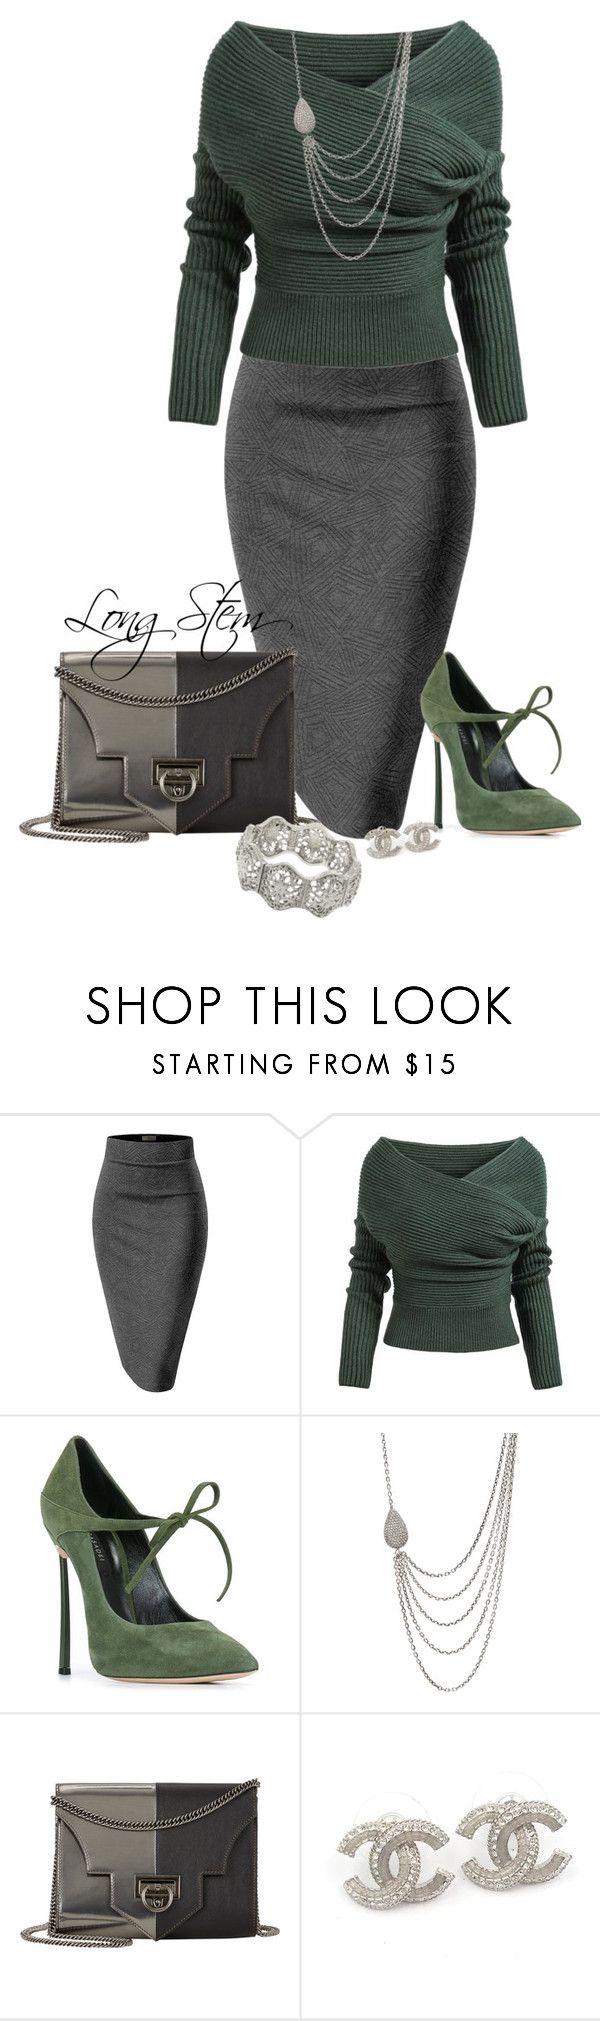 """""""2/18/17"""" by longstem ❤ liked on Polyvore featuring Whit, Casadei, Irit Design, Reece Hudson, Chanel and 1928"""